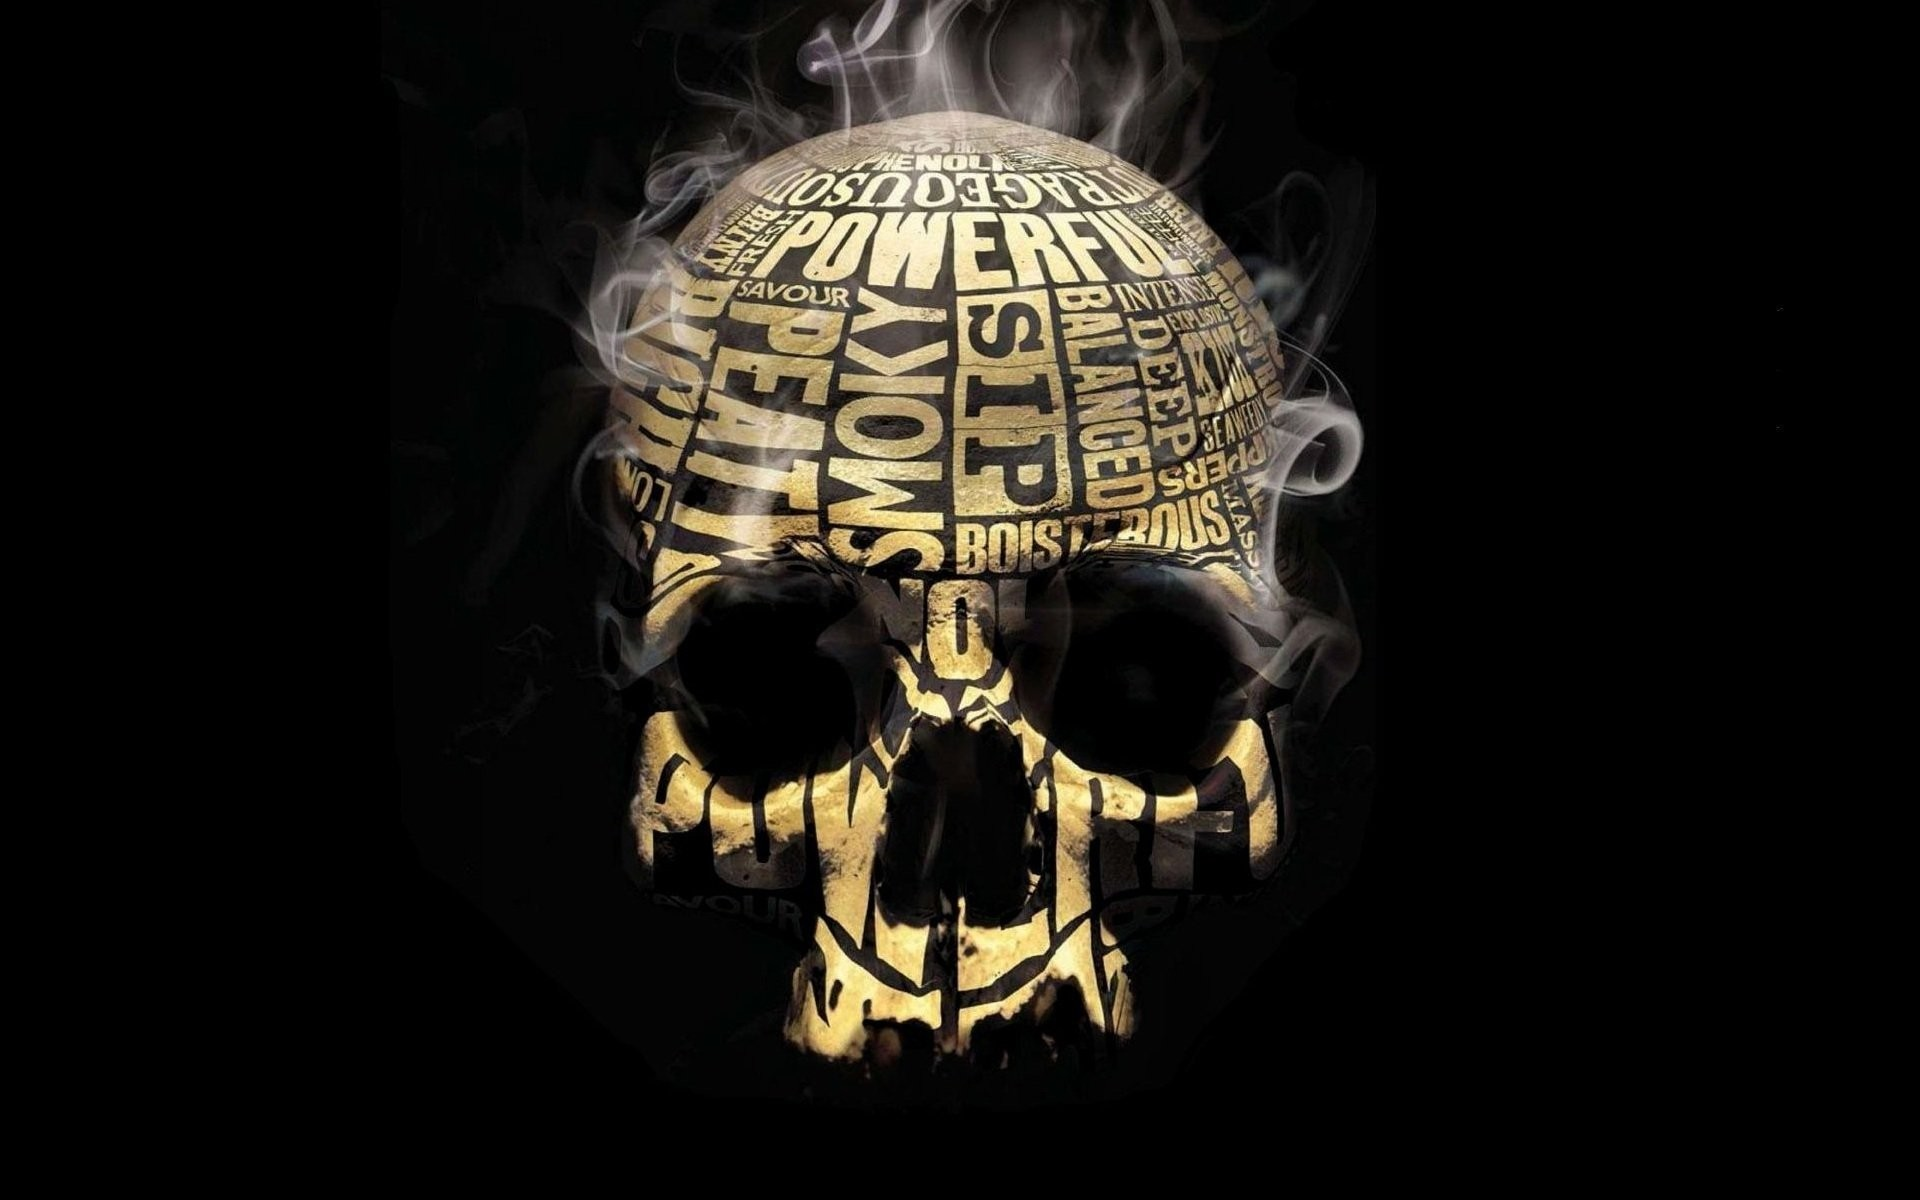 1920x1200 background smoker skull of the orbit the text words smoke cigarettes  tobacco nicotine strong stability deep